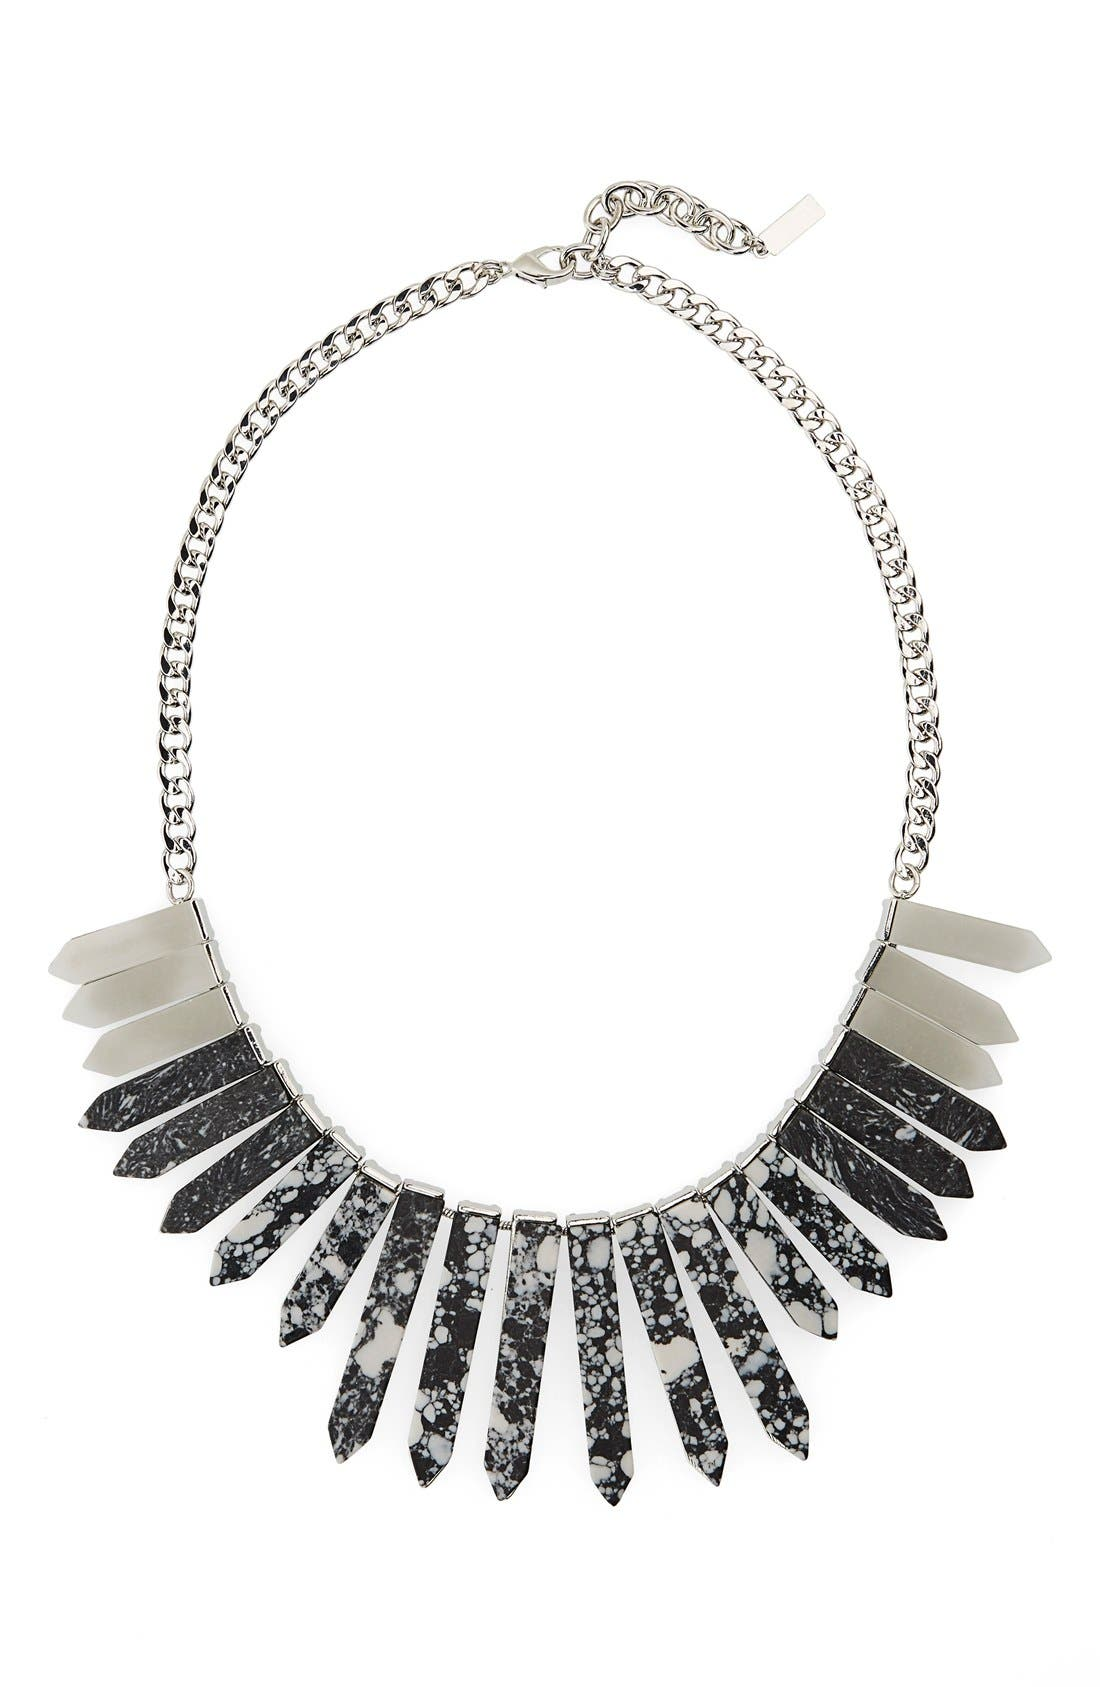 Main Image - BaubleBar 'Marble Ra' Bib Necklace